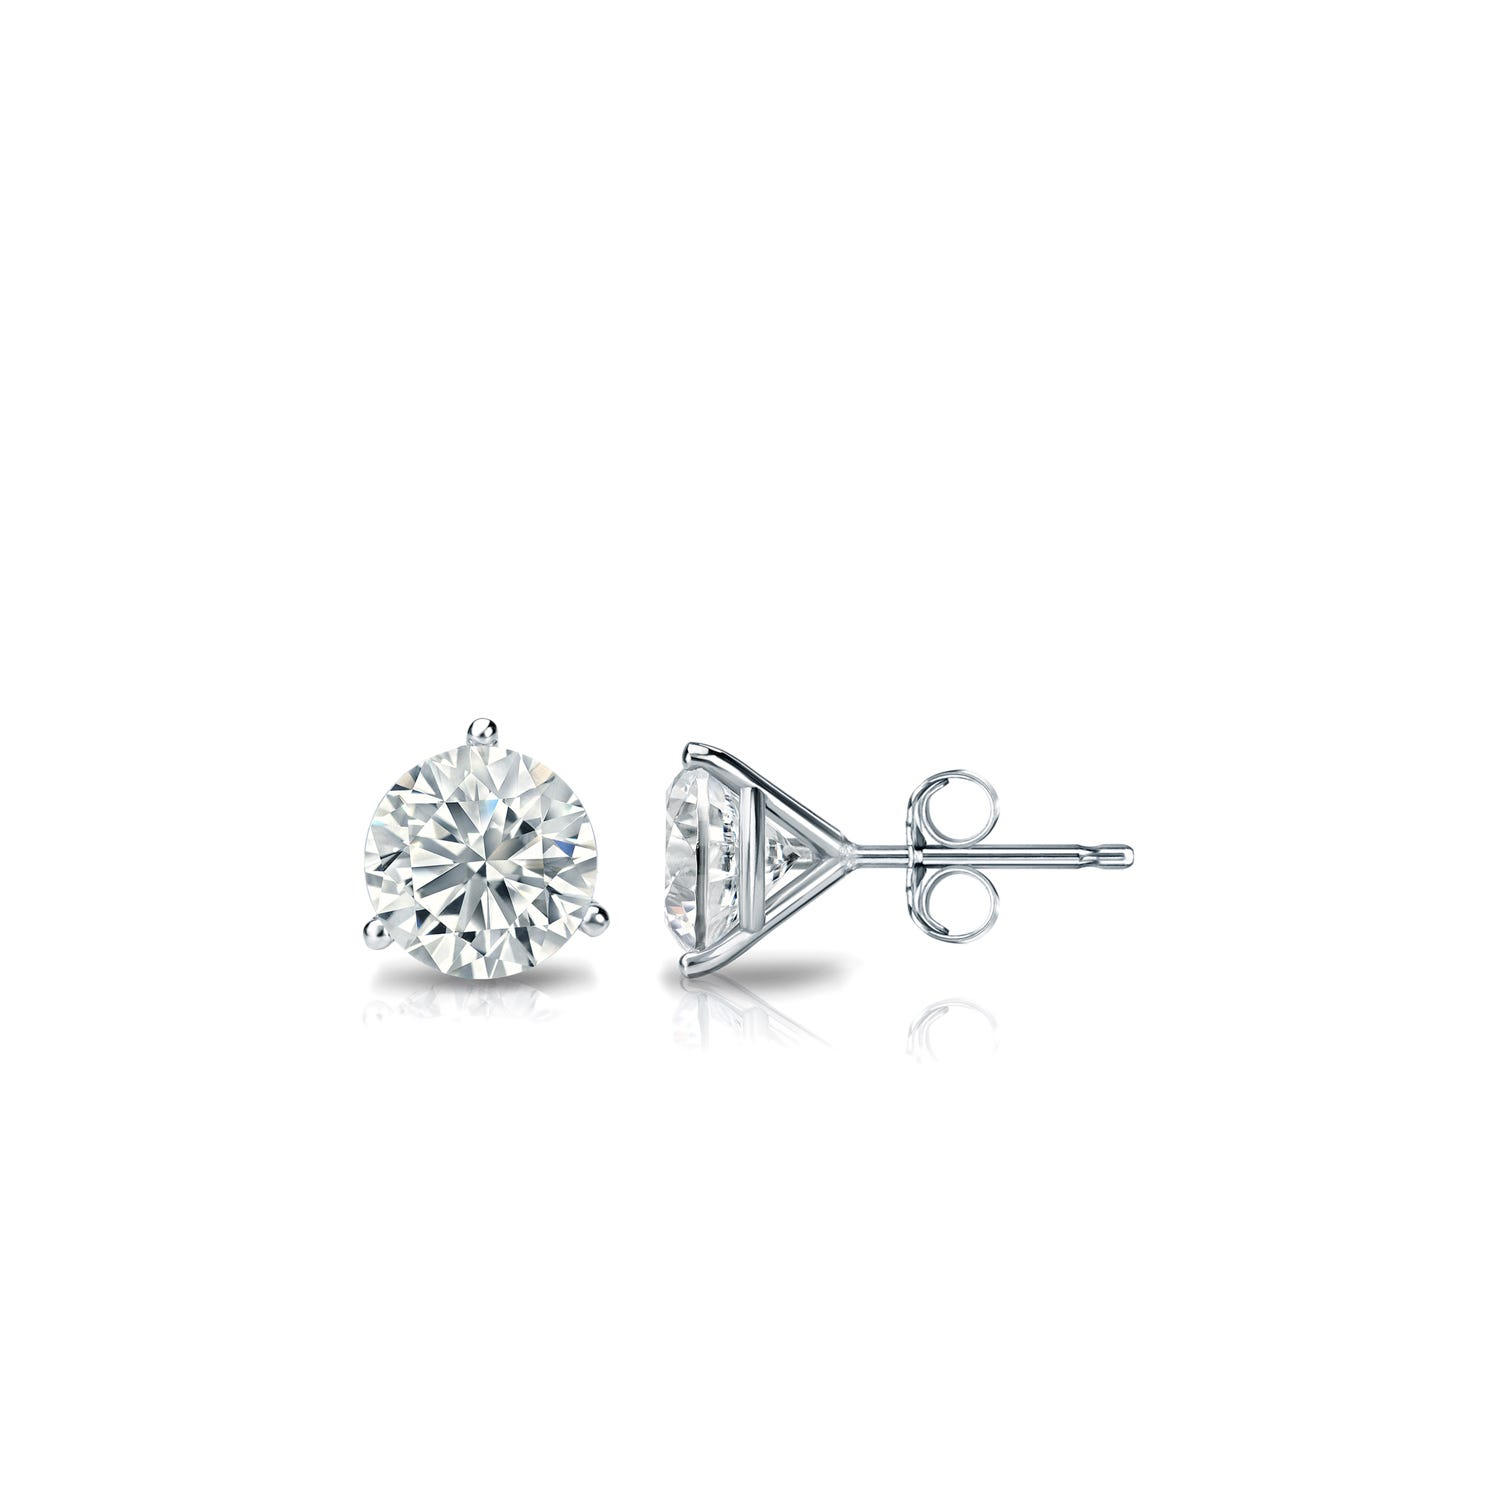 1/3 CTTW Round Diamond Solitaire Stud Earrings IJ SI1 in Platinum 3-Prong Setting